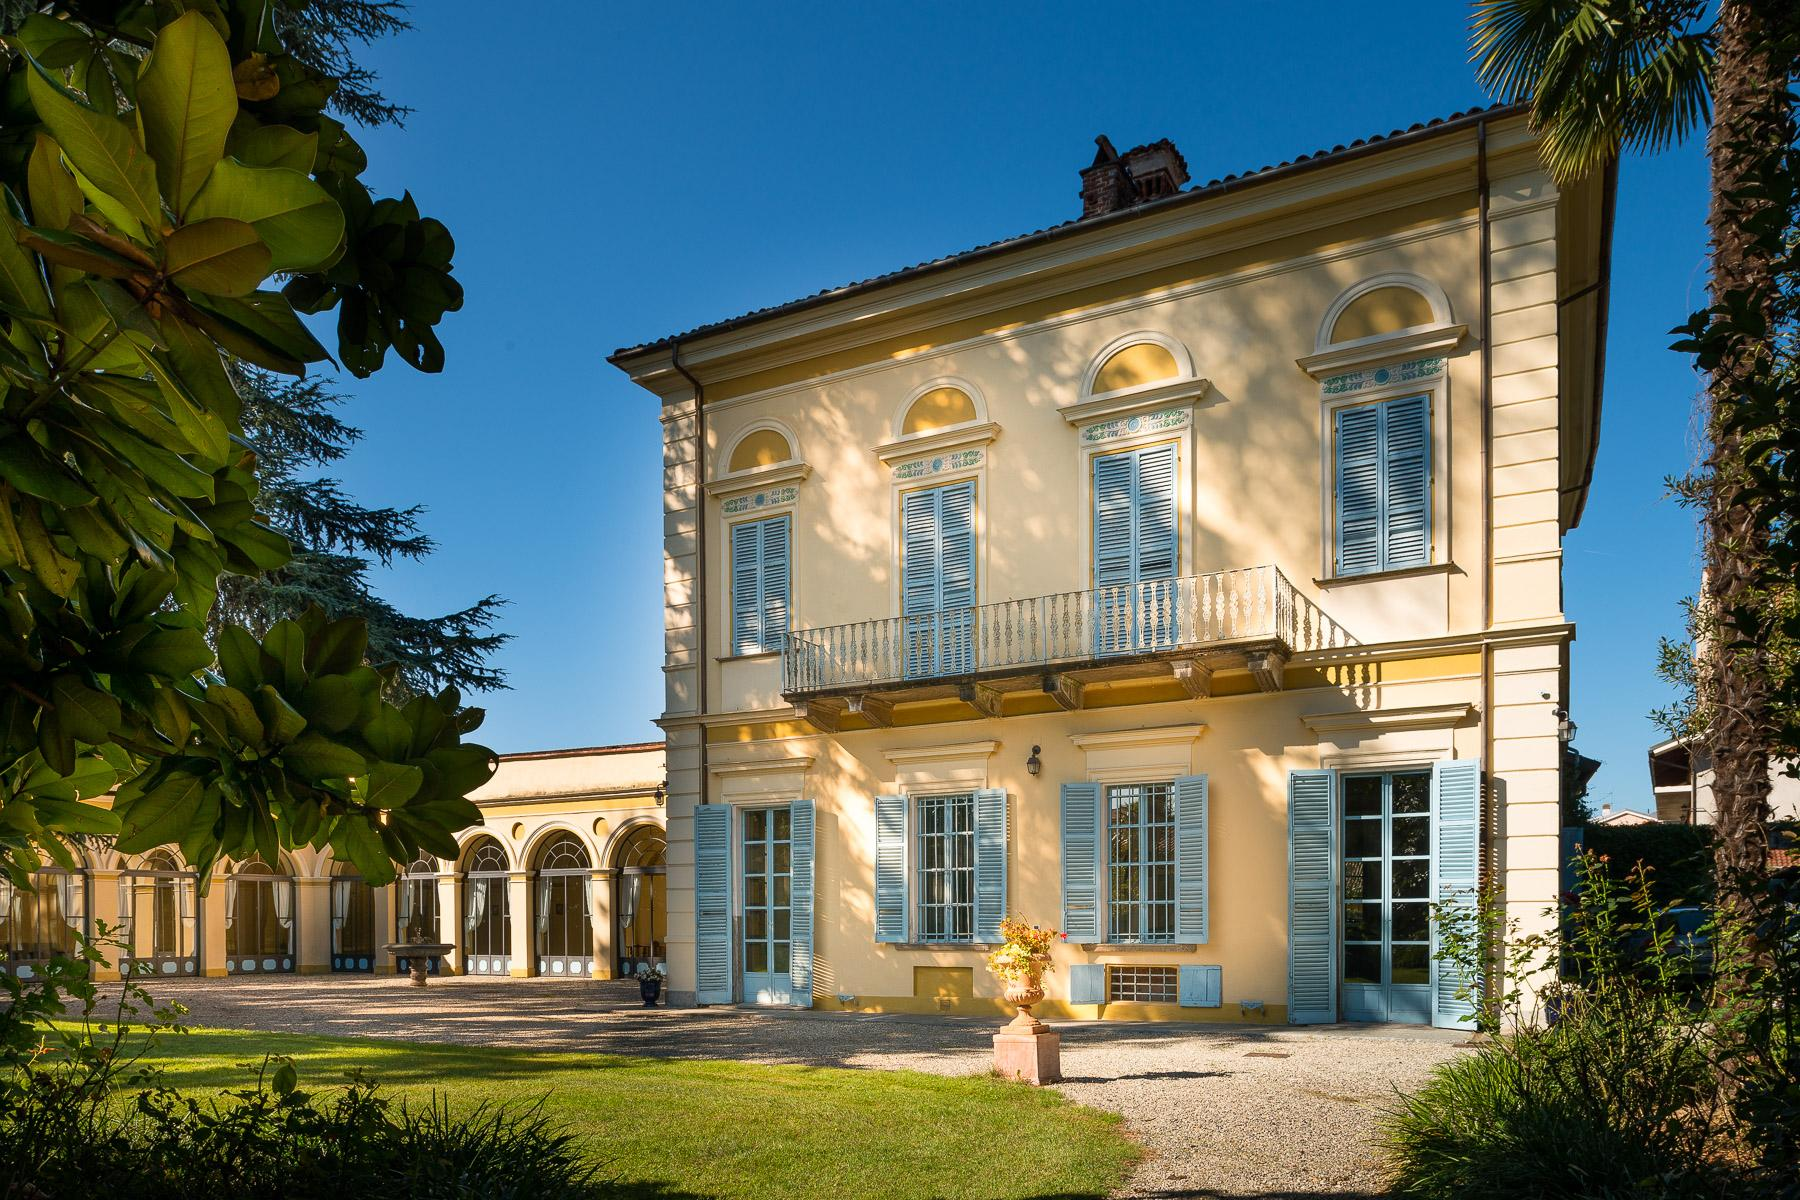 Elegant Villa in the Canavese countryside - 2